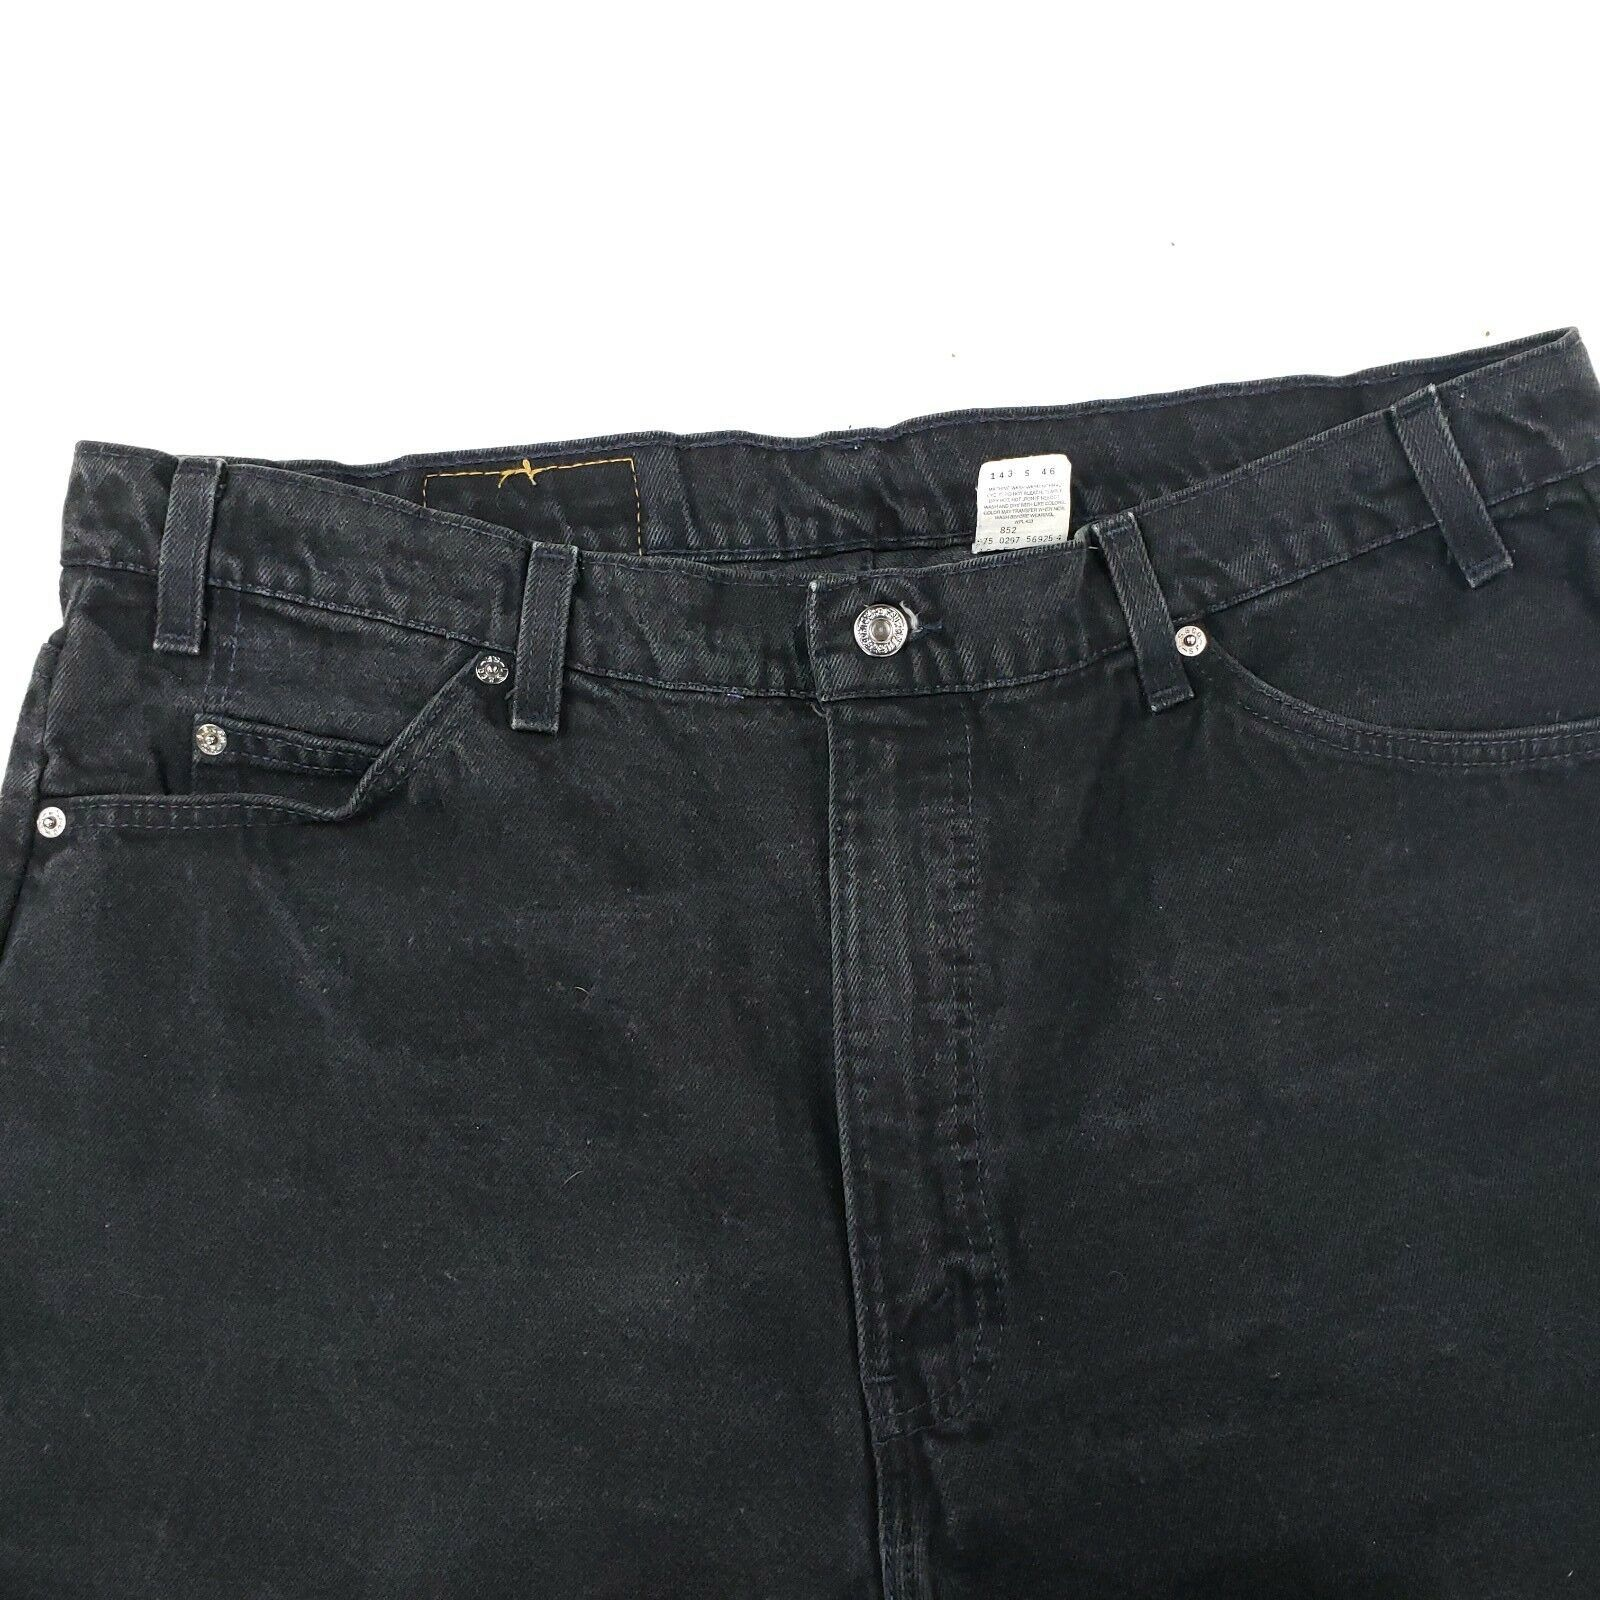 e38cfd6d9d5 LEVIS ORANGE TAB VINTAGE 550 DENIM SHORTS black MENS 42x11 Measure 40x11